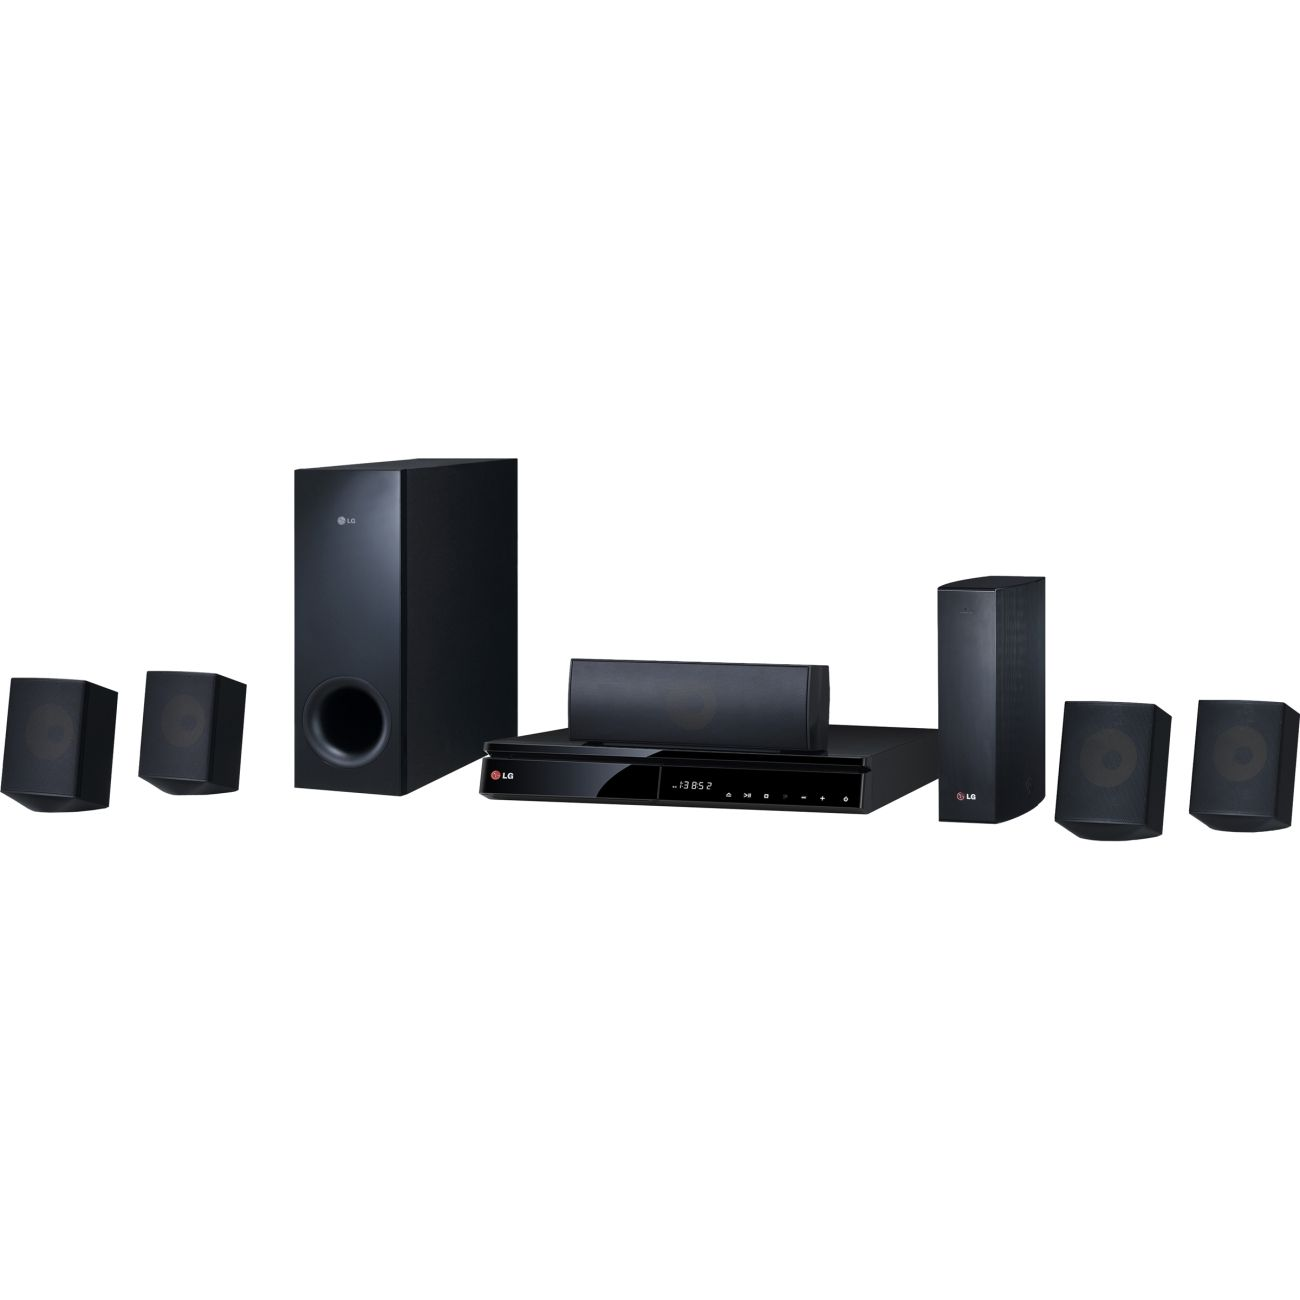 With LG's BH6830SW home theater system you can customize your TV